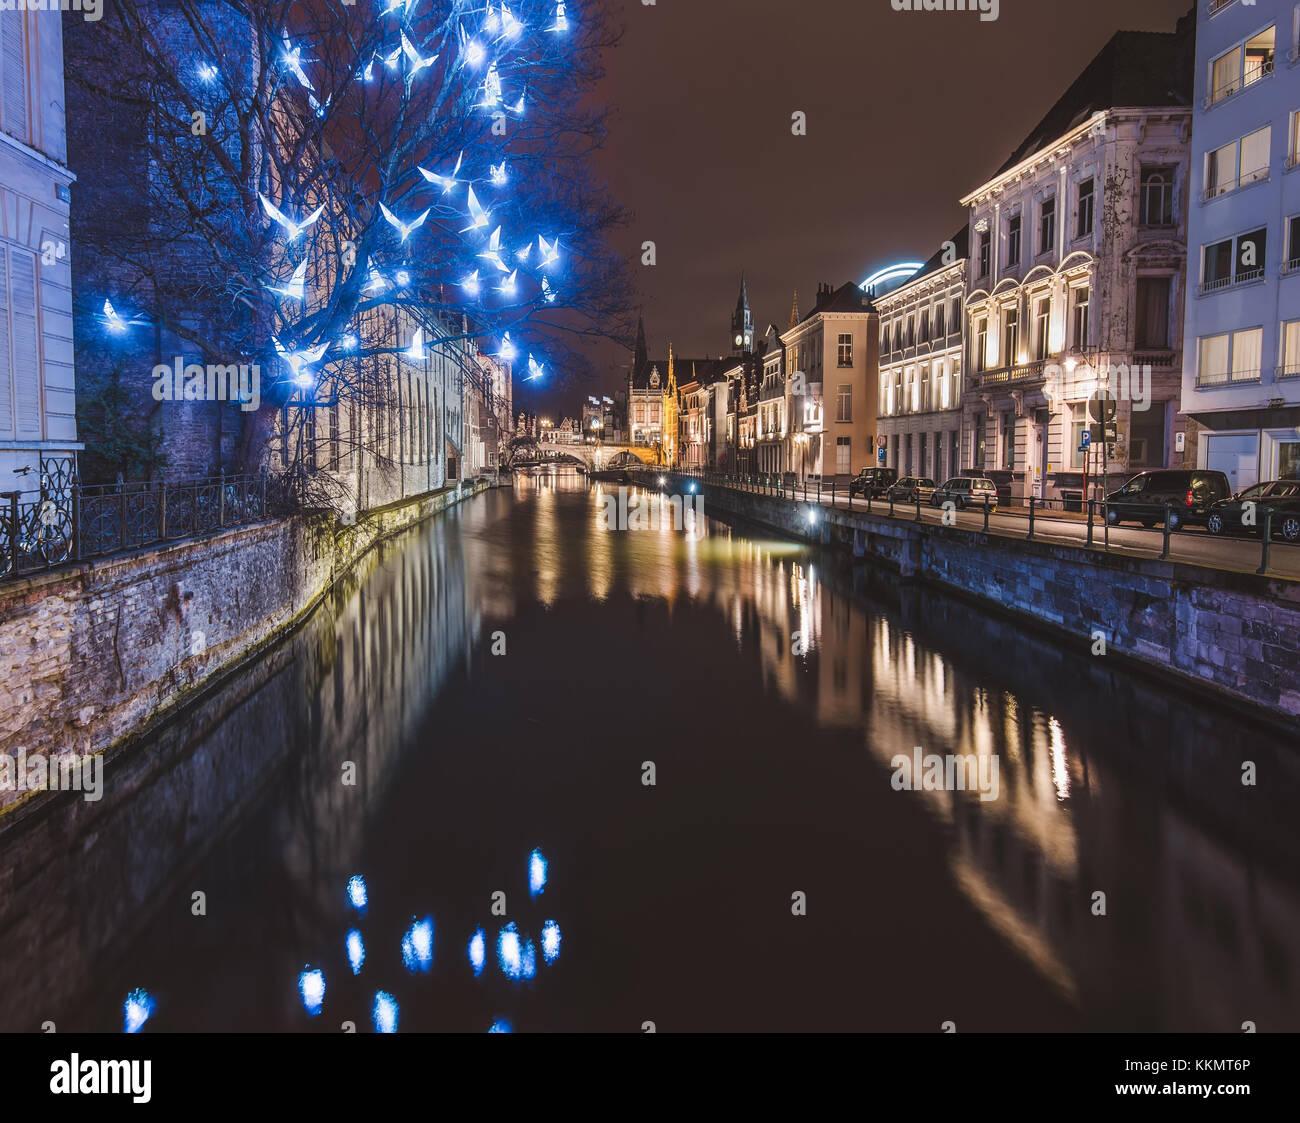 Ghent Christmas Illumination and Canal by Night - Stock Image